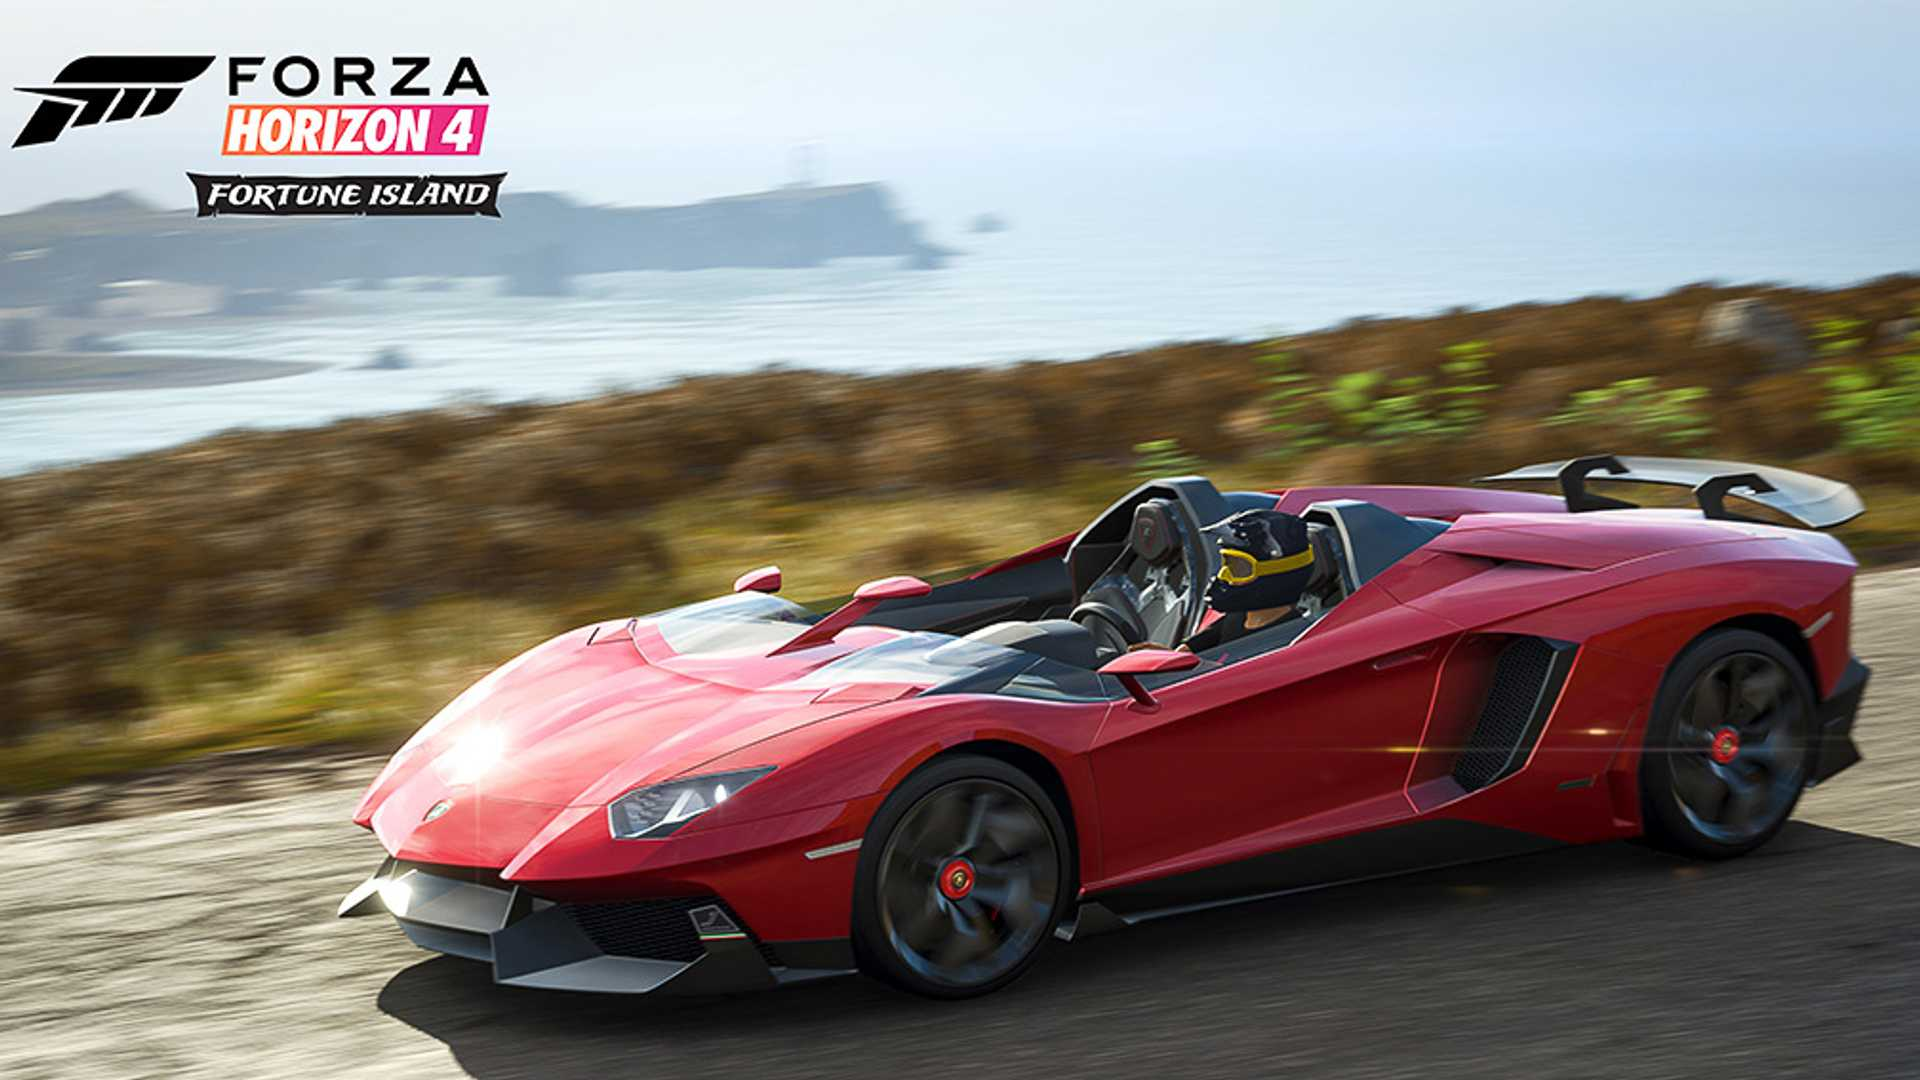 forza-horizon-4-fortune-island-expansion (7)